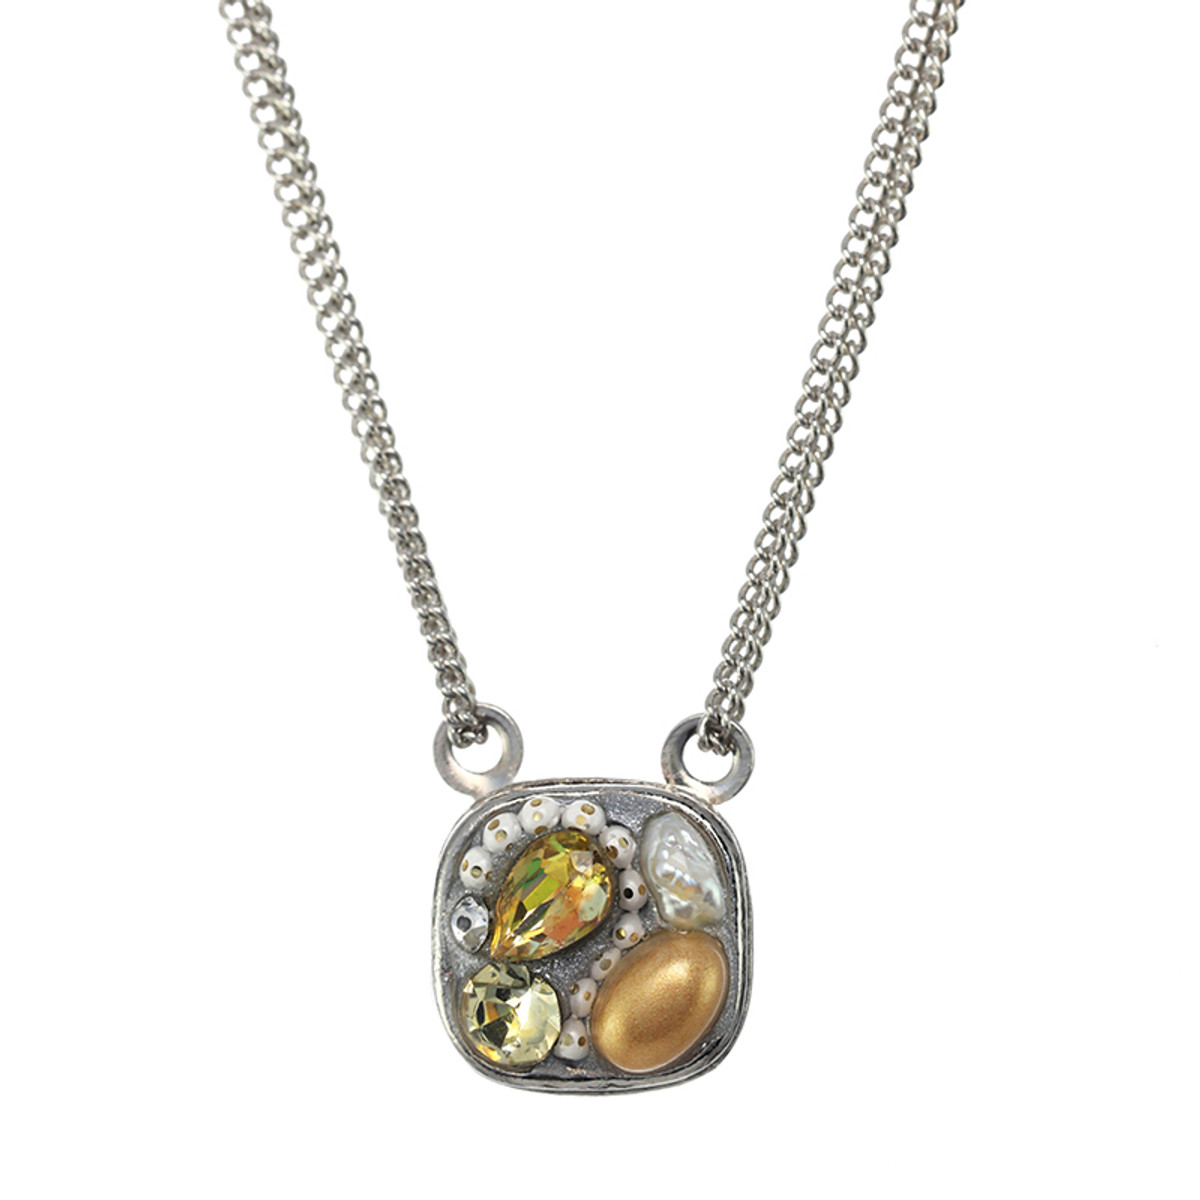 Michal Golan Moonlight Square Necklace